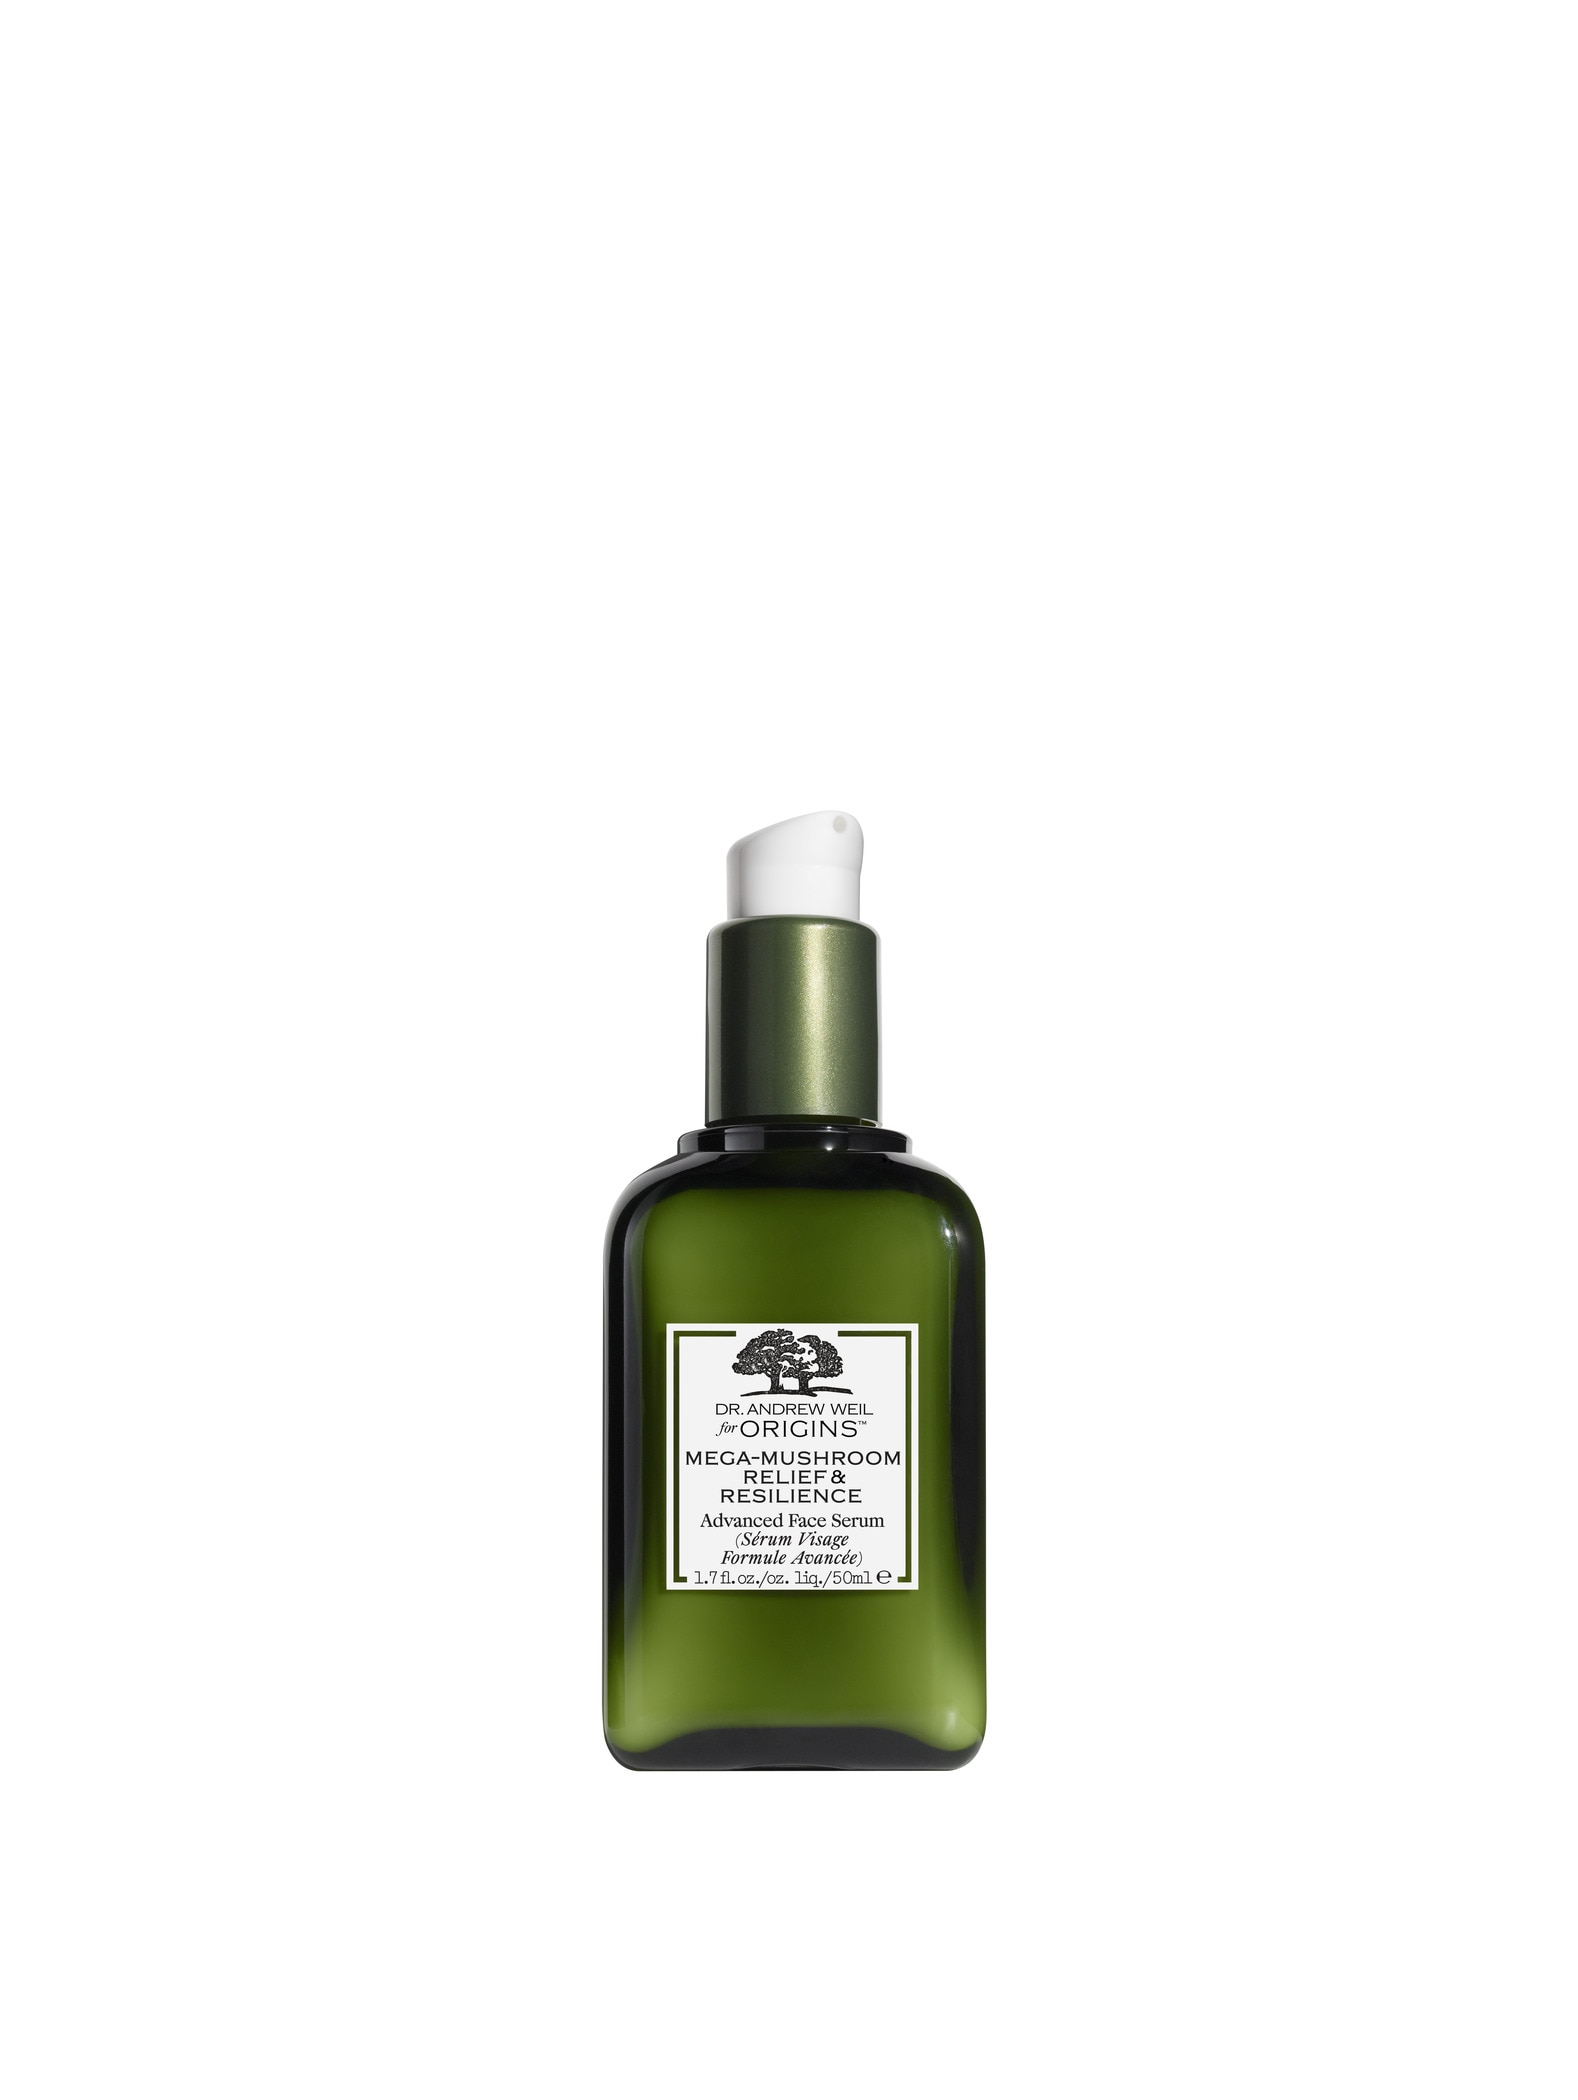 MEGA MUSHROOM RELIEF & RESILIENCE ADVANCED FACE SÉRUM